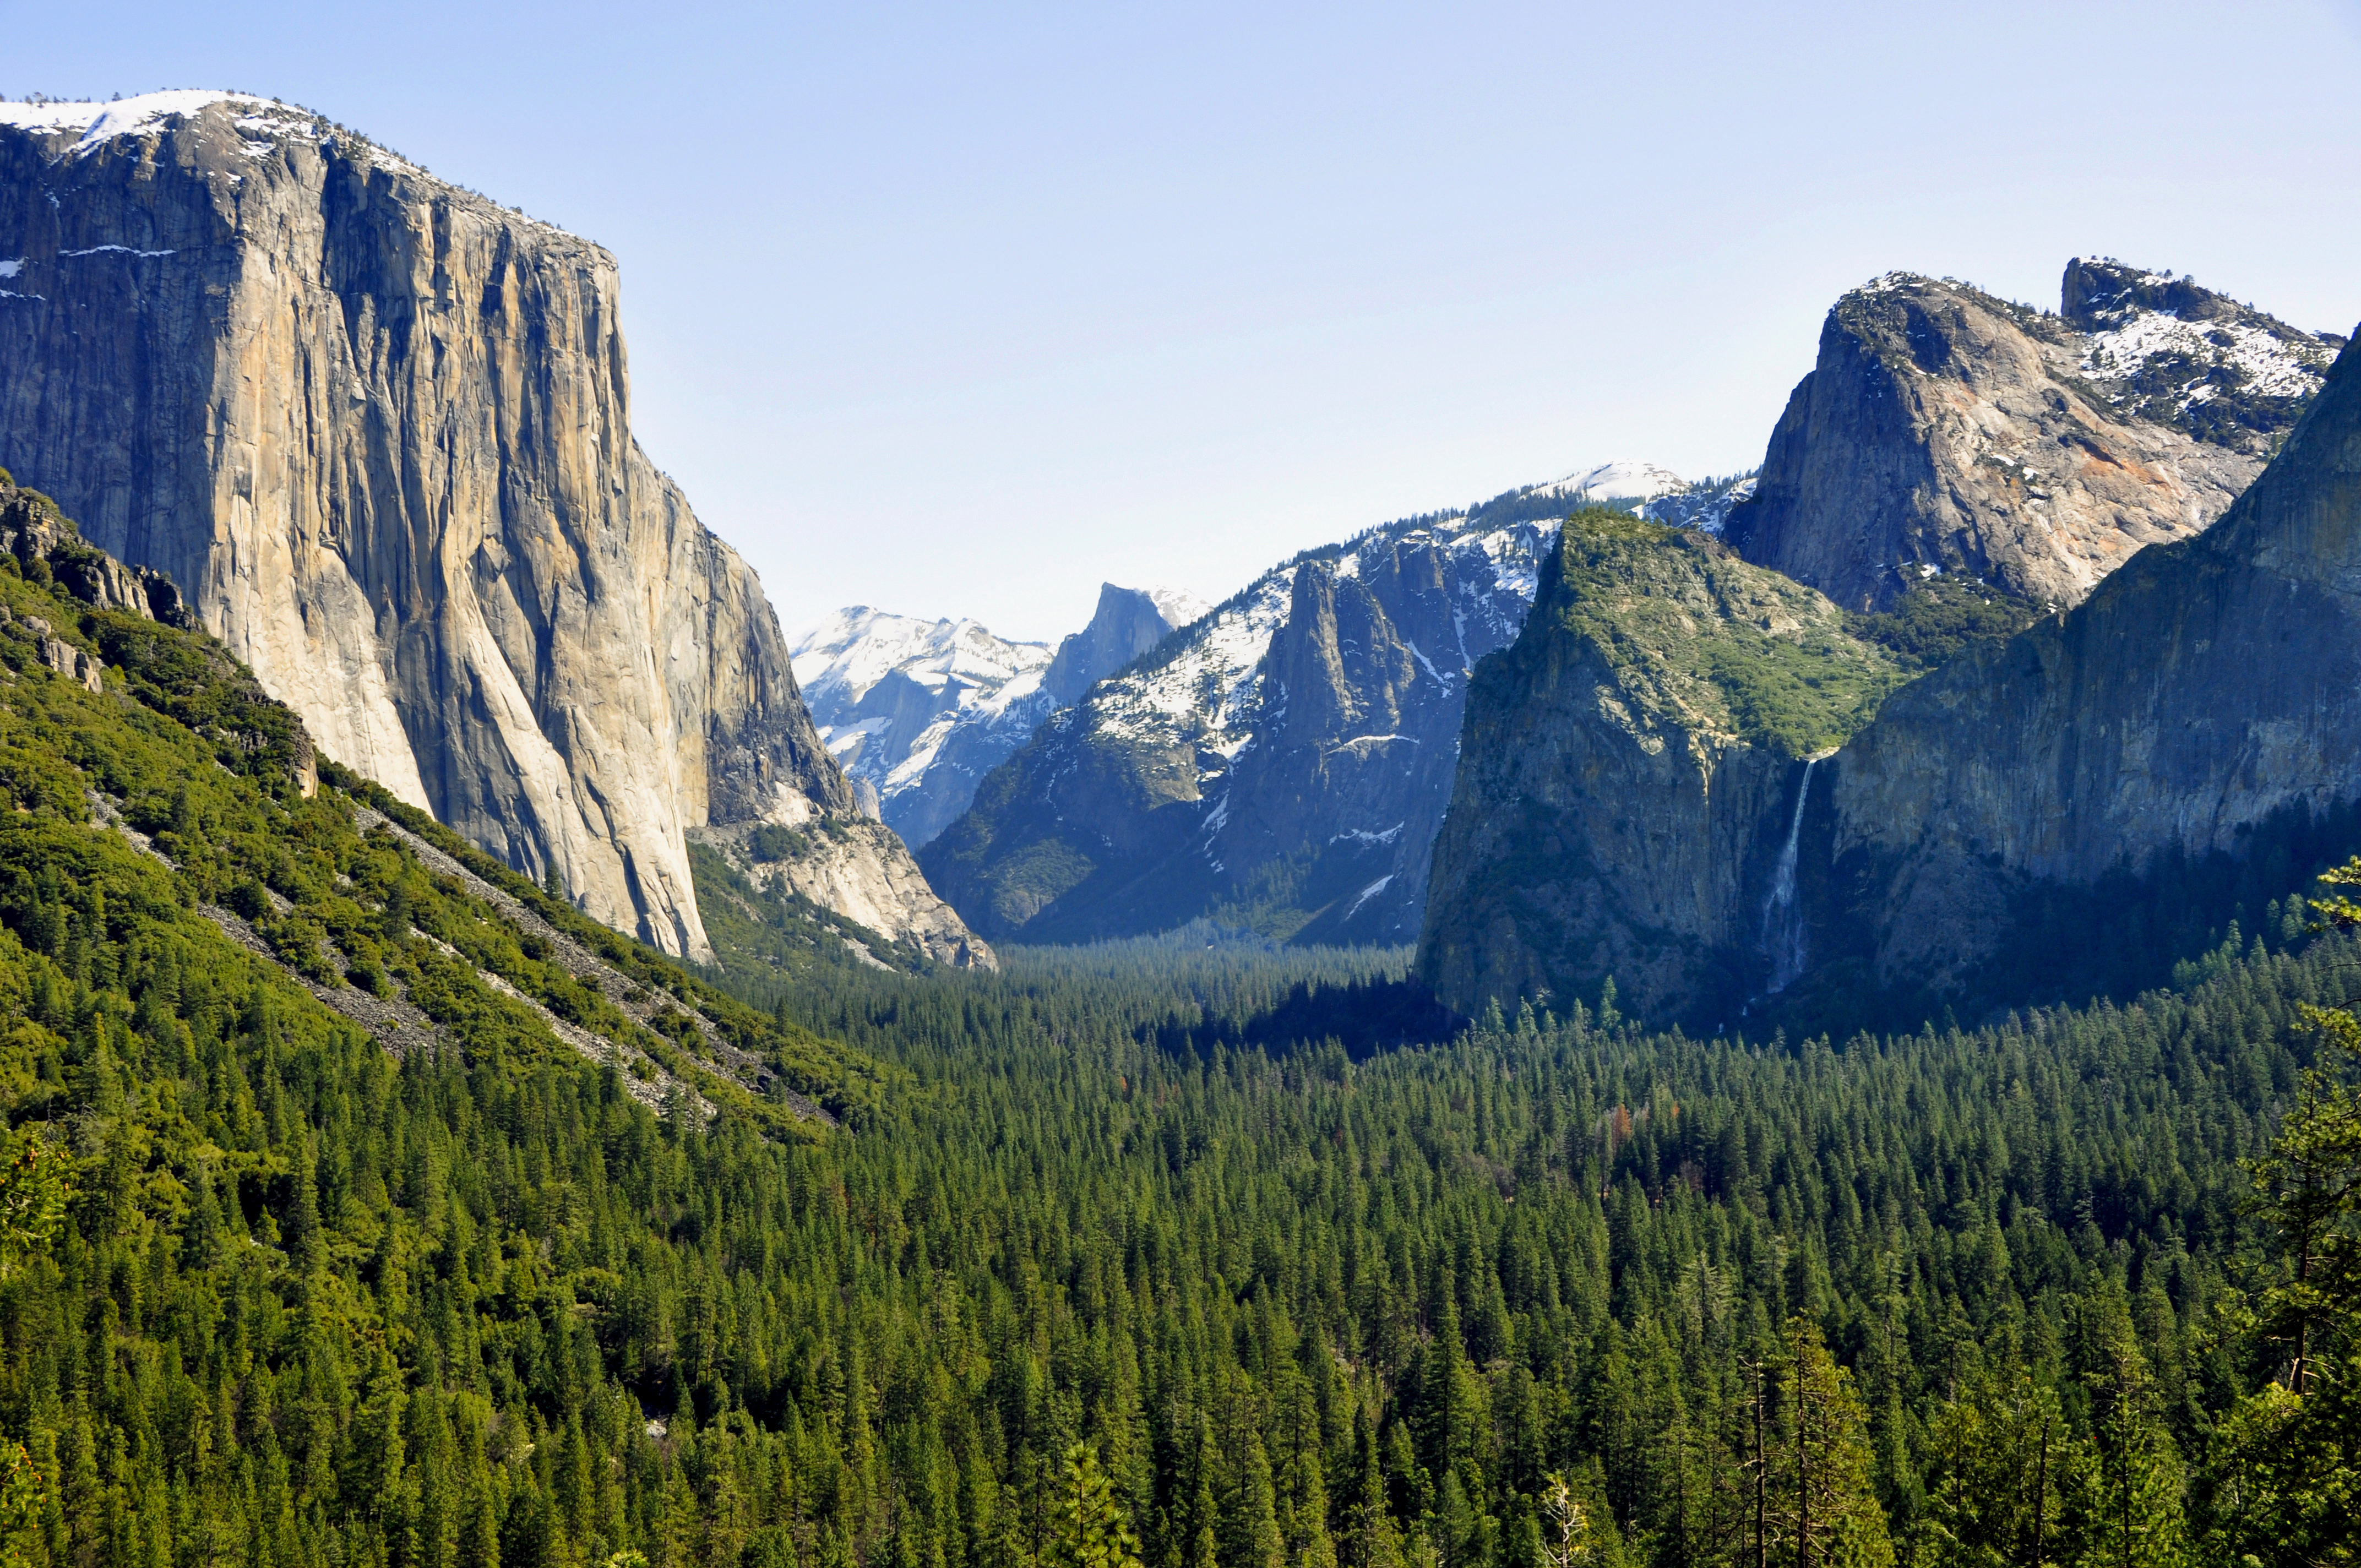 http://en.wikipedia.org/wiki/File:1_yosemite_valley_tunnel_view_2010.JPG